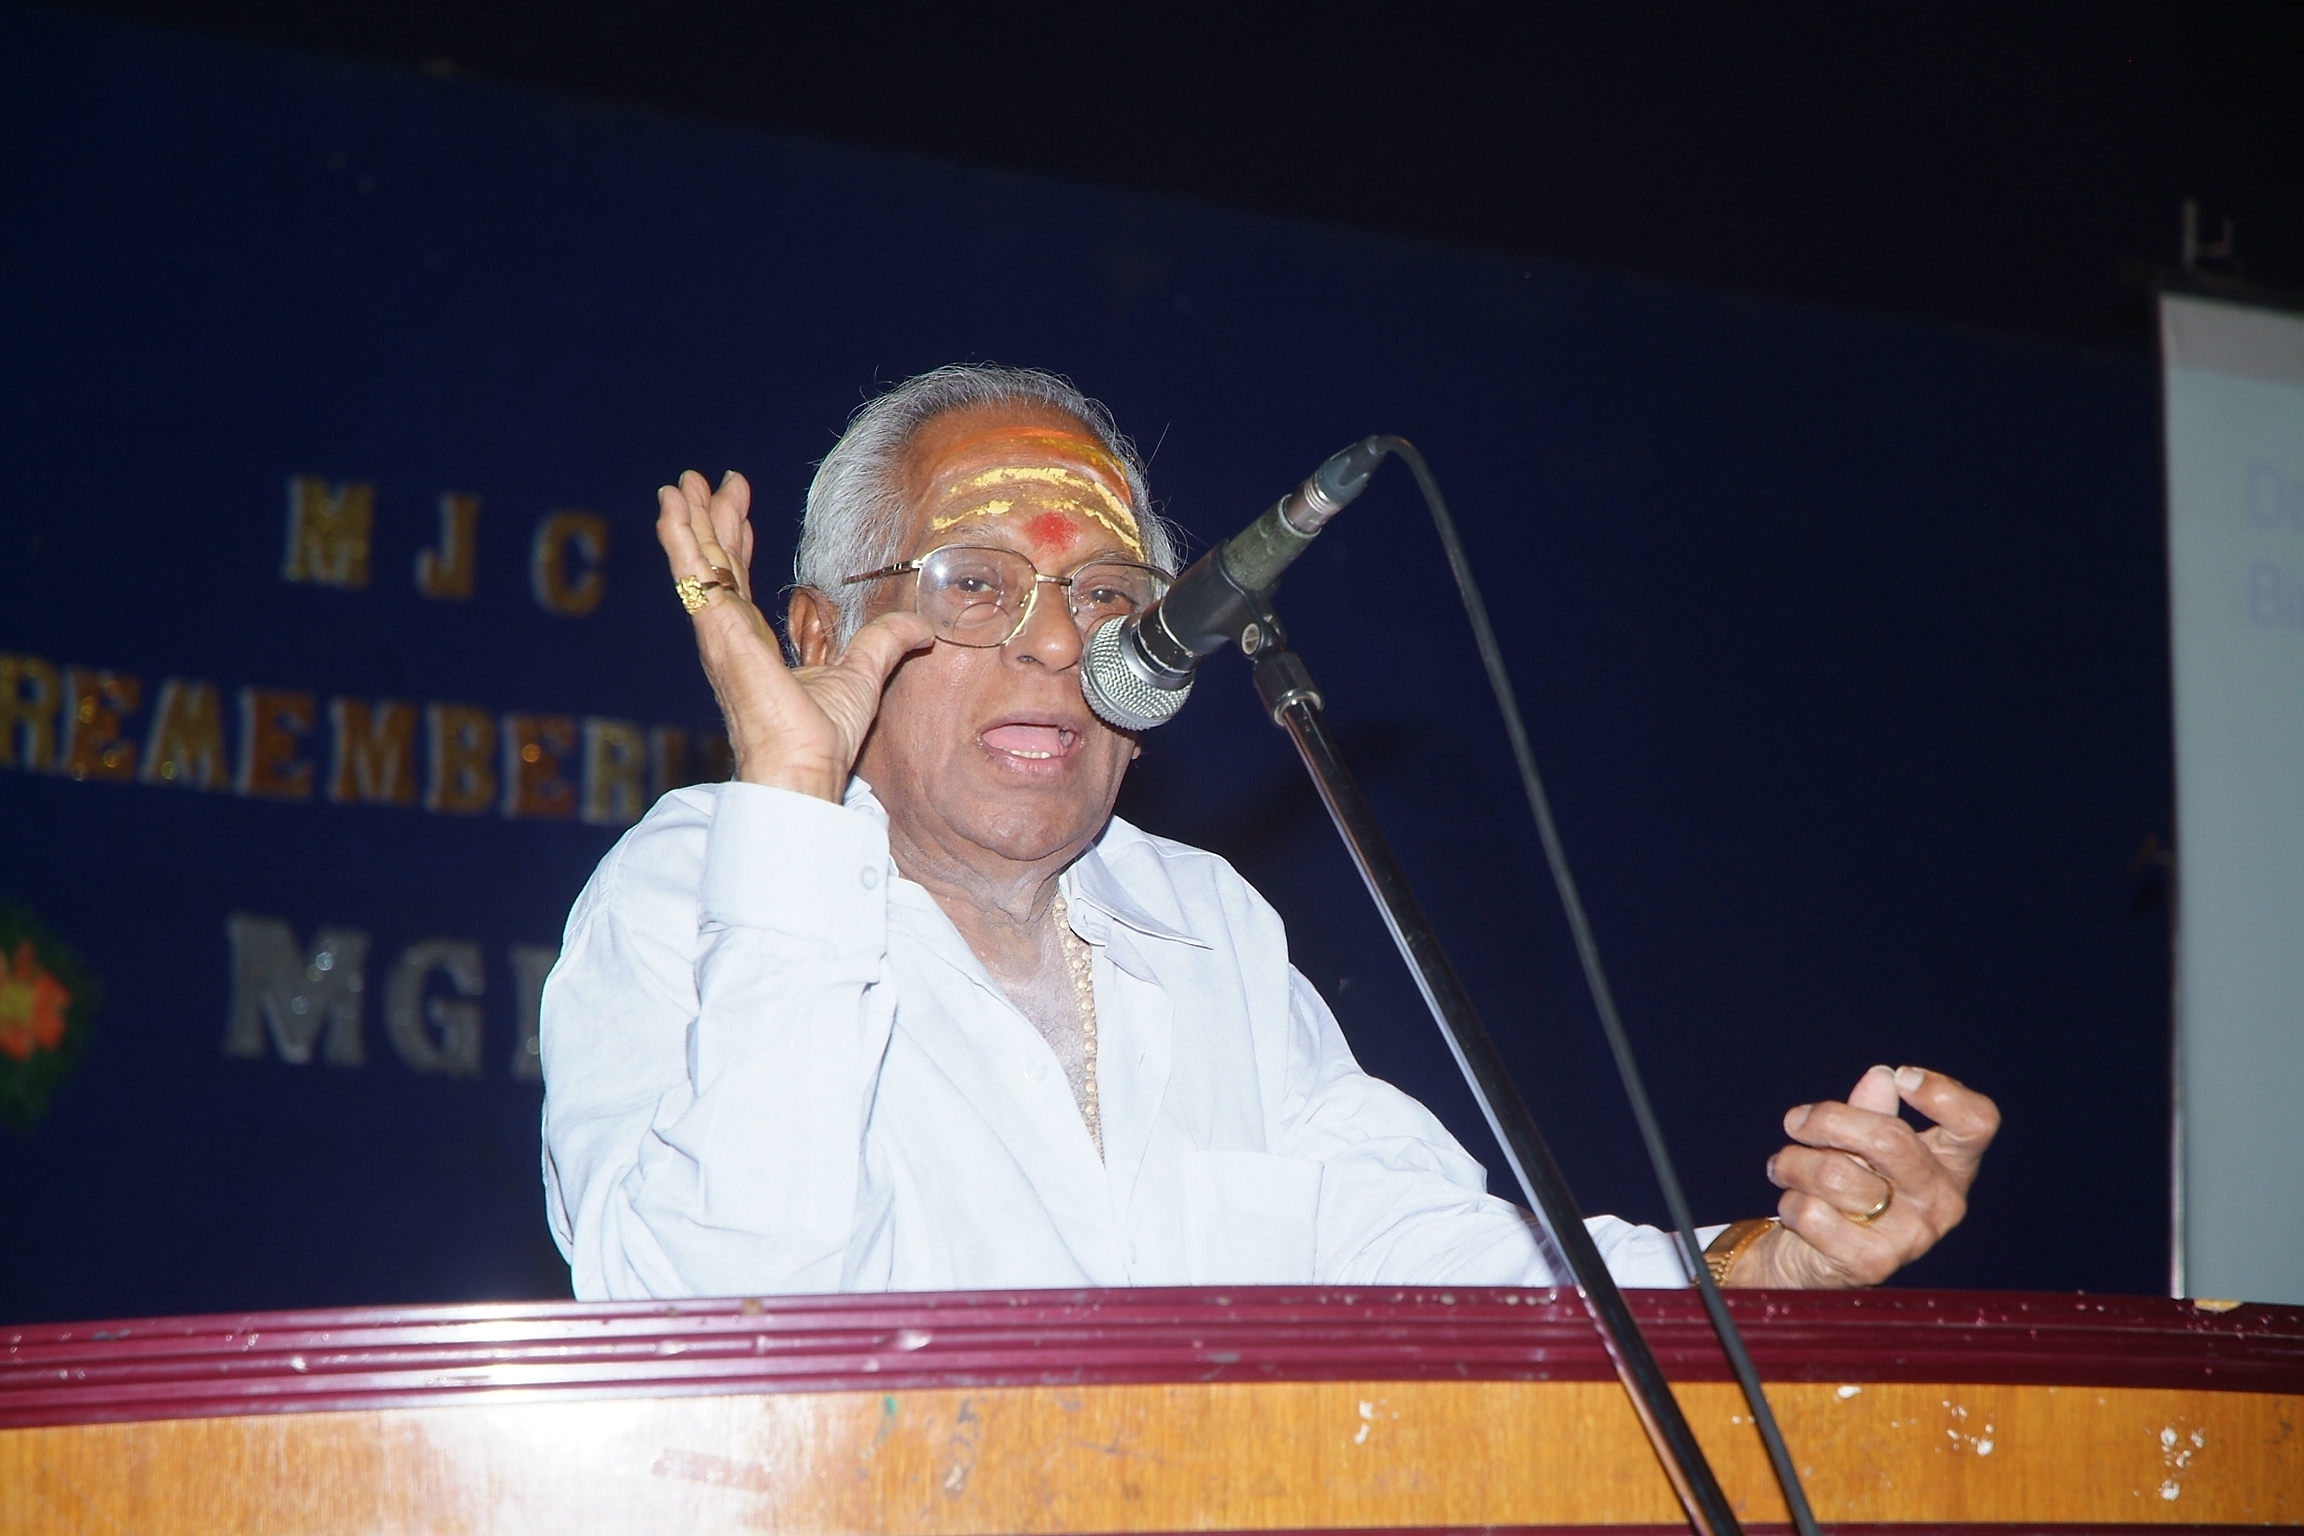 MSV, the Man Who Knew Nothing But Music